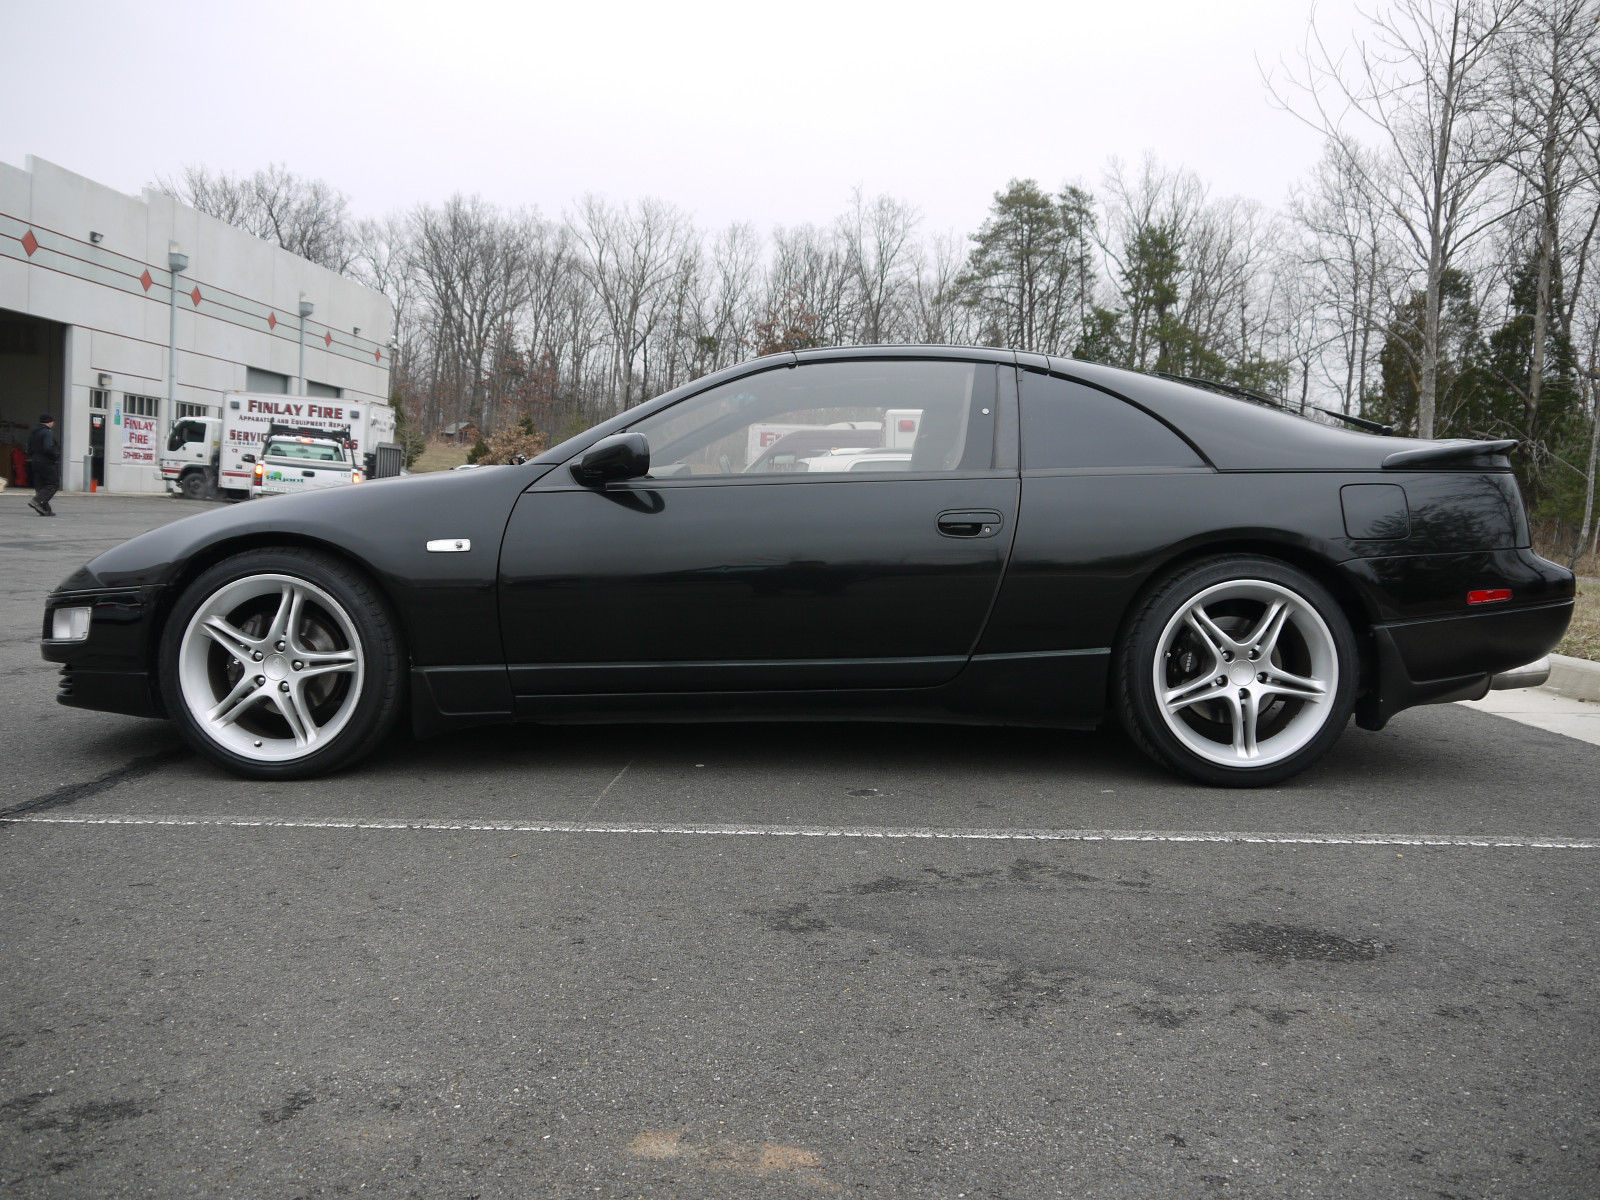 1989 Nissan 300zx Twin Turbo Fairlady Z Z32 Tt Jdm Rhd Imported From Japan For Sale In Gainesville Virginia United States For Sale Photos Technical Specifications Description